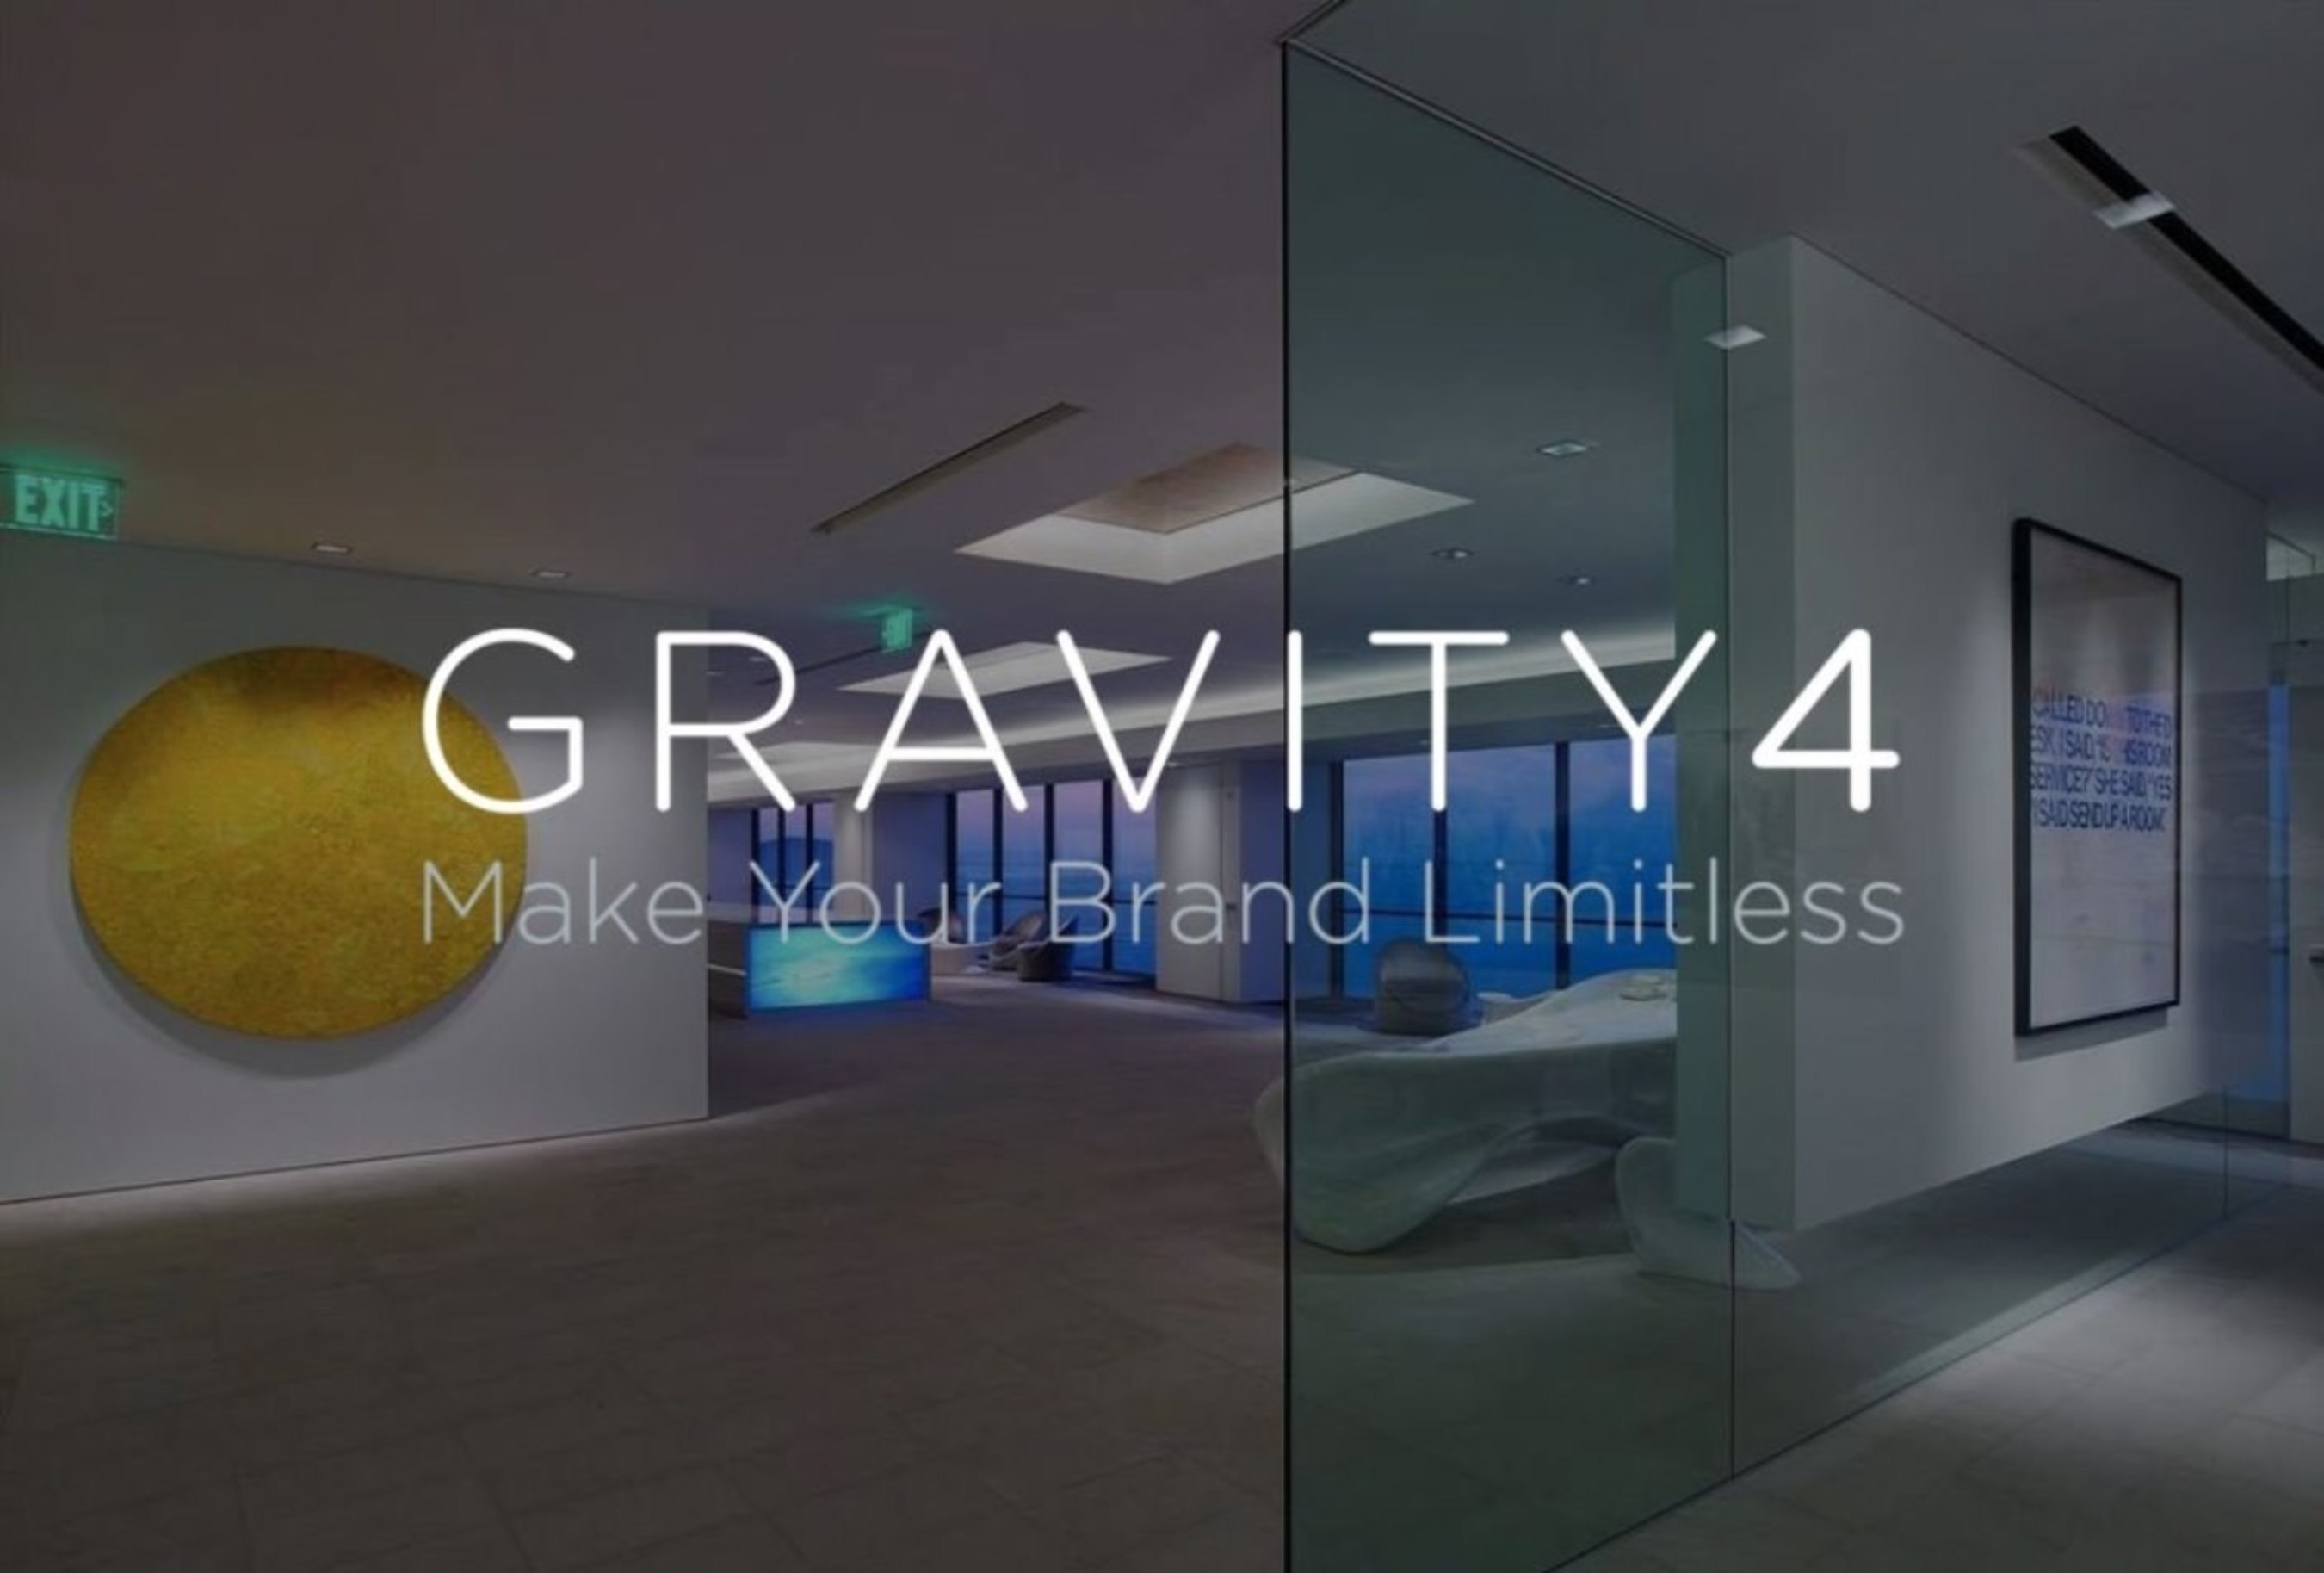 Gravity4 Expands its Operations in Canada and Australia, Accelerating it's Global Expansion To Meet Client Demand